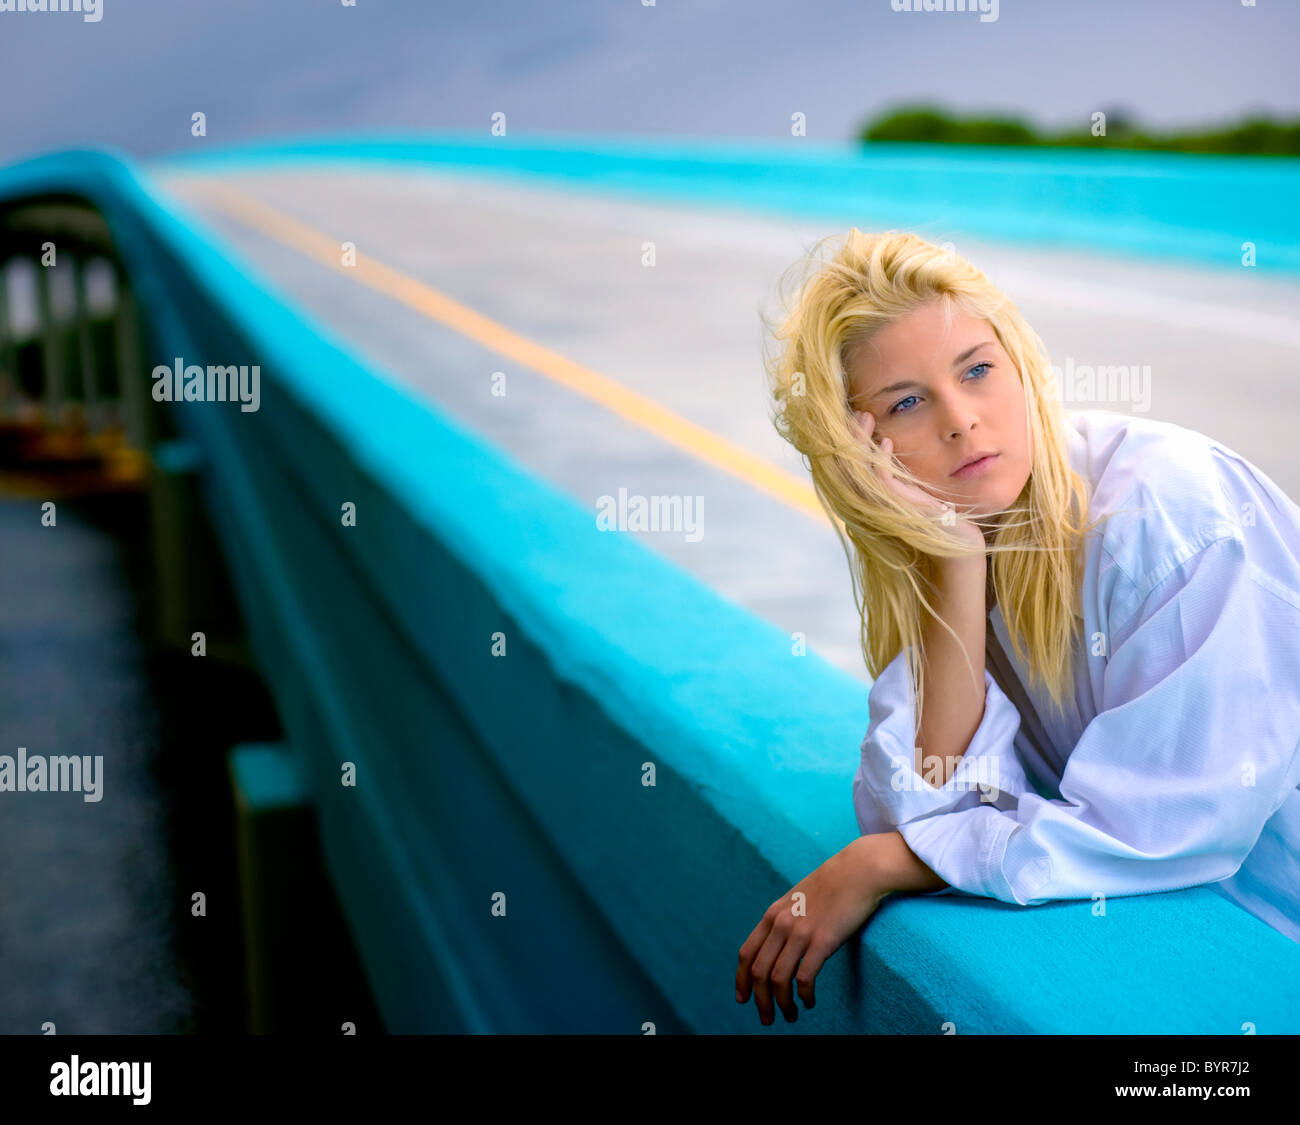 Young blonde woman on bridge daydreaming - Stock Image